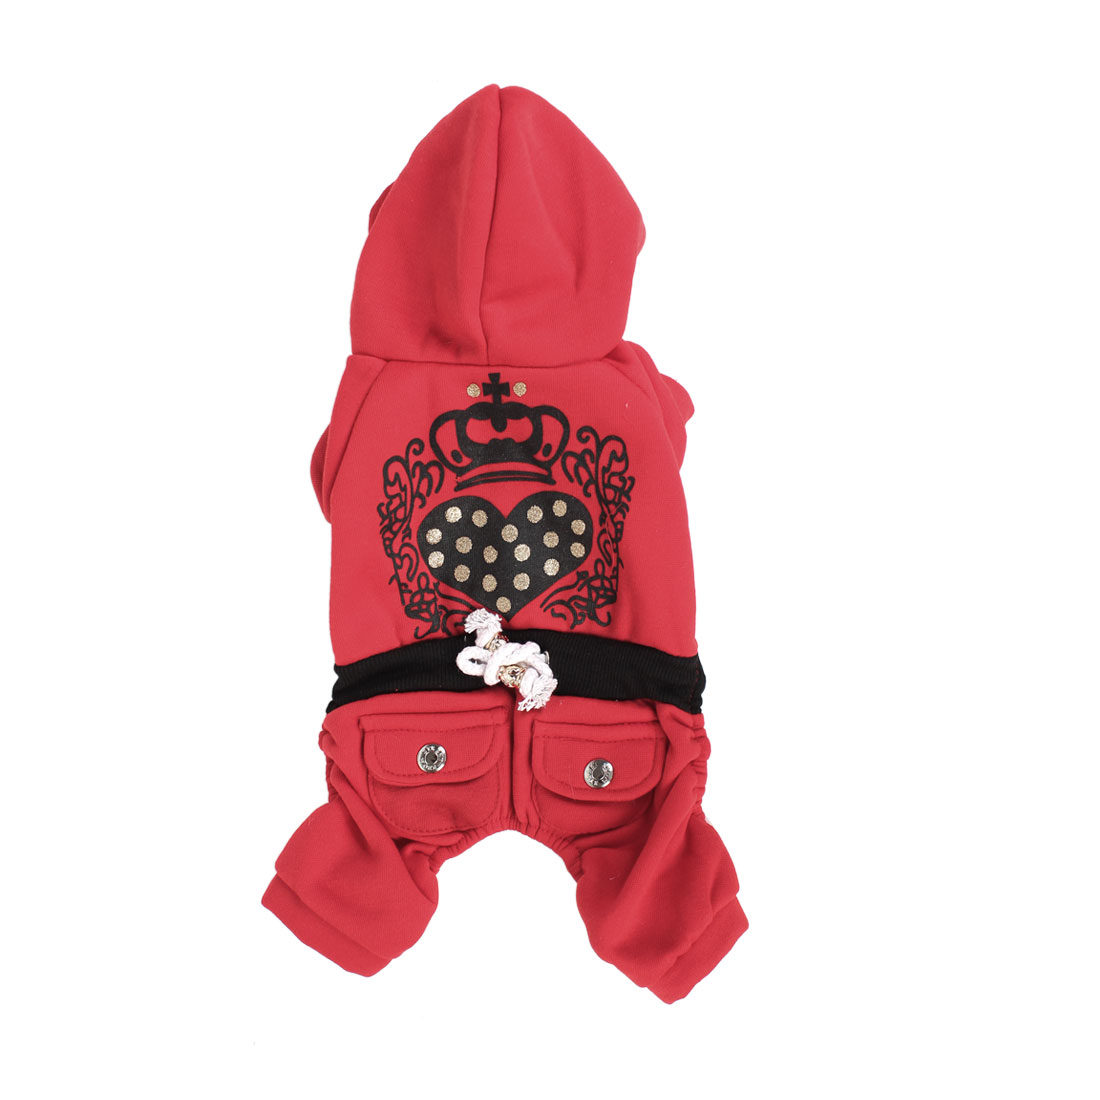 Winter Warm Sleeved Hoodie Pet Dog Yorkie Apparel Coat Clothes Red Black Size M